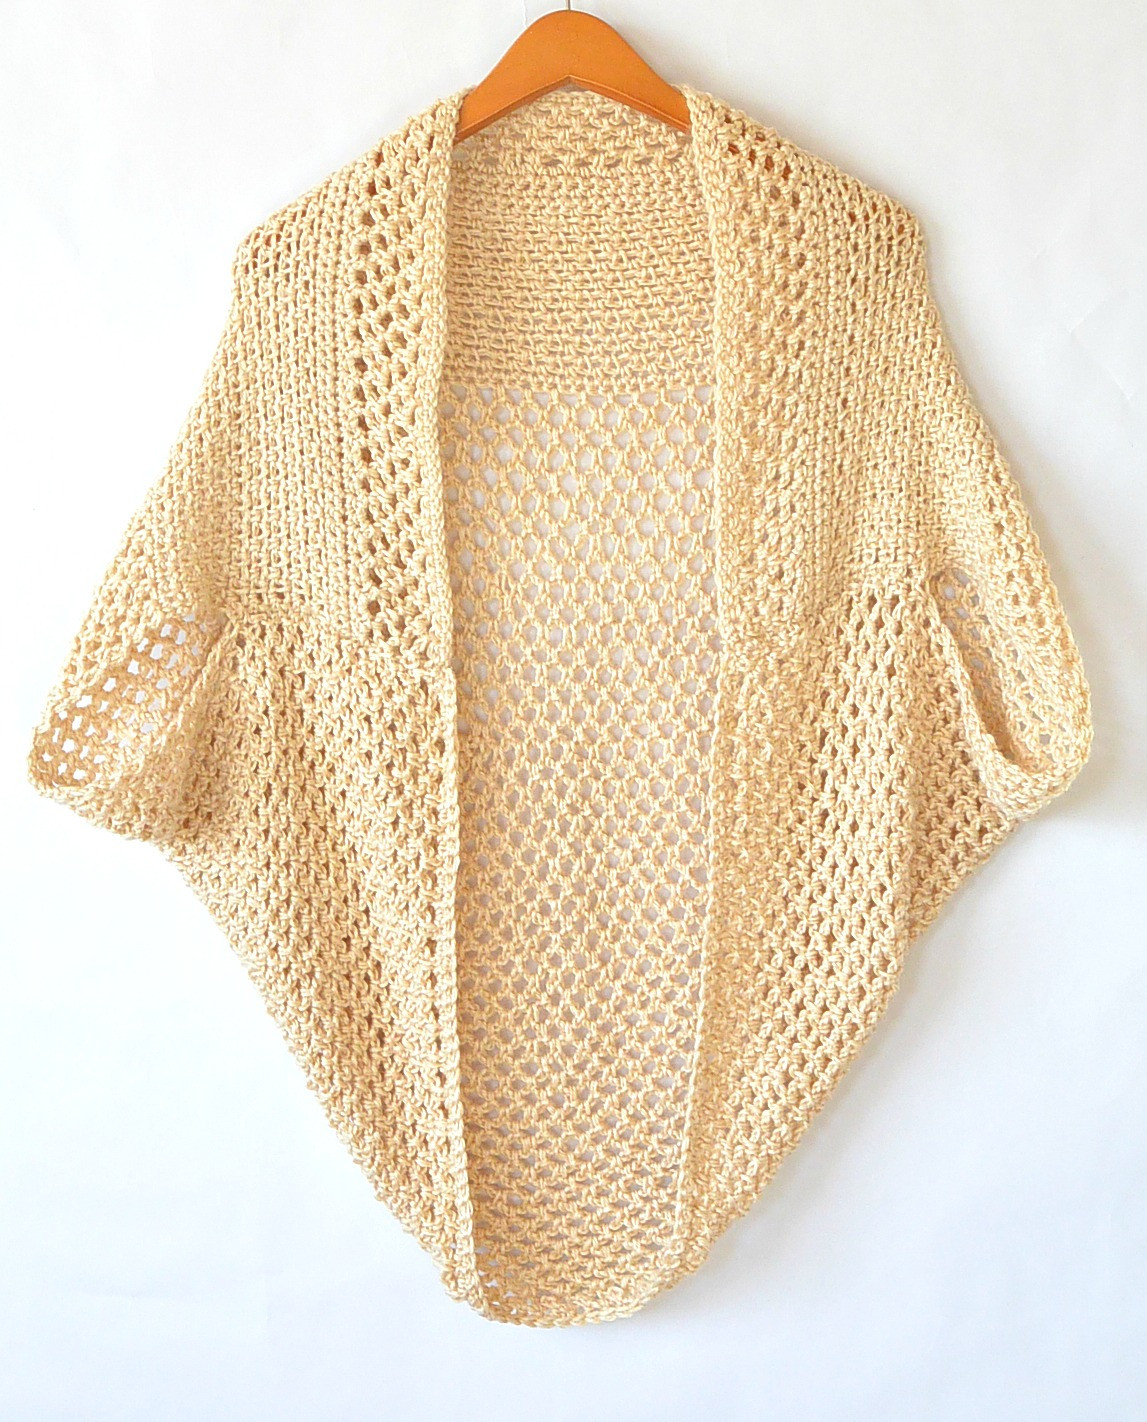 Crochet Sweater Pattern Free Elegant Mod Mesh Honey Blanket Sweater – Mama In A Stitch Of Unique 50 Images Crochet Sweater Pattern Free